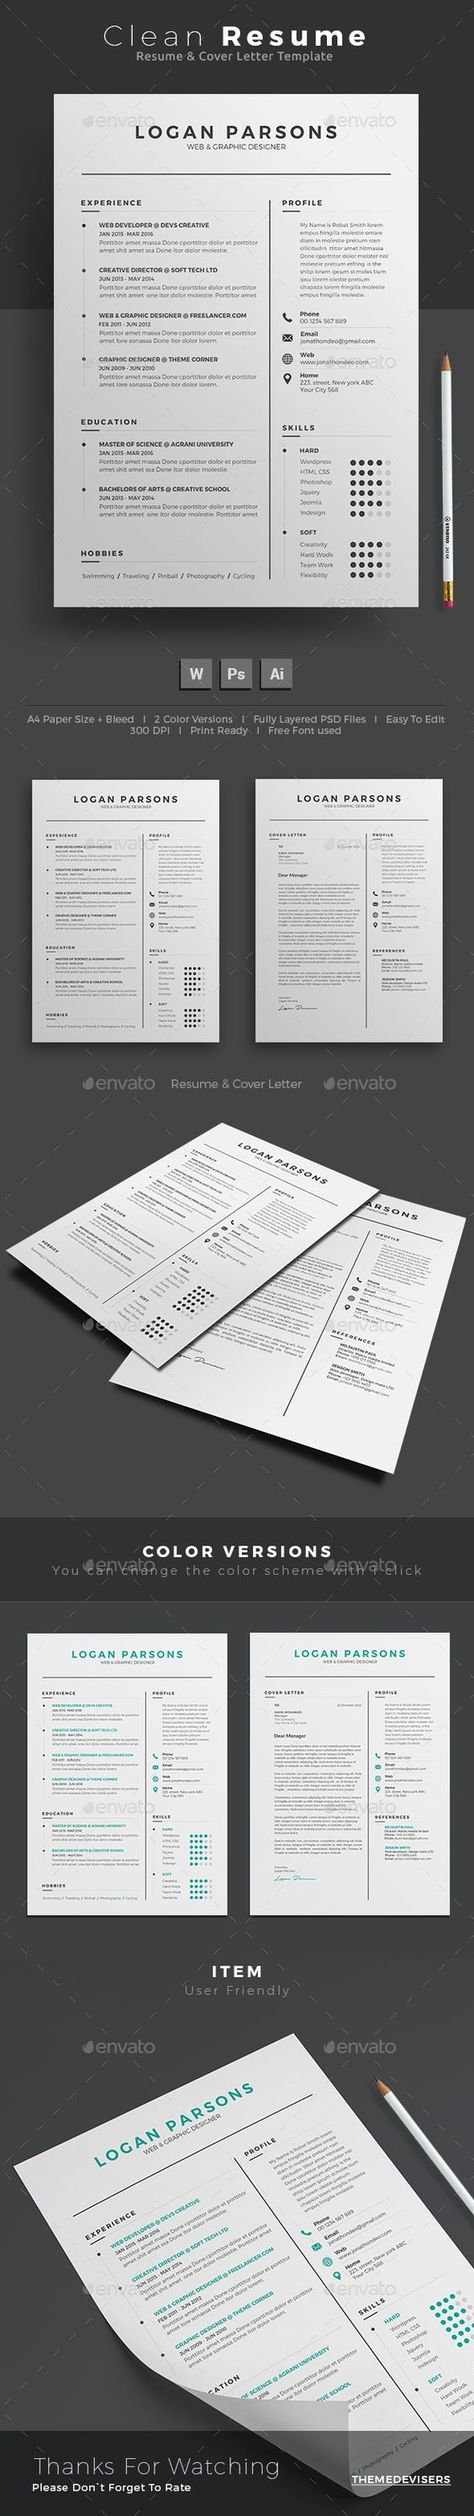 Resume Resume ideas Template and